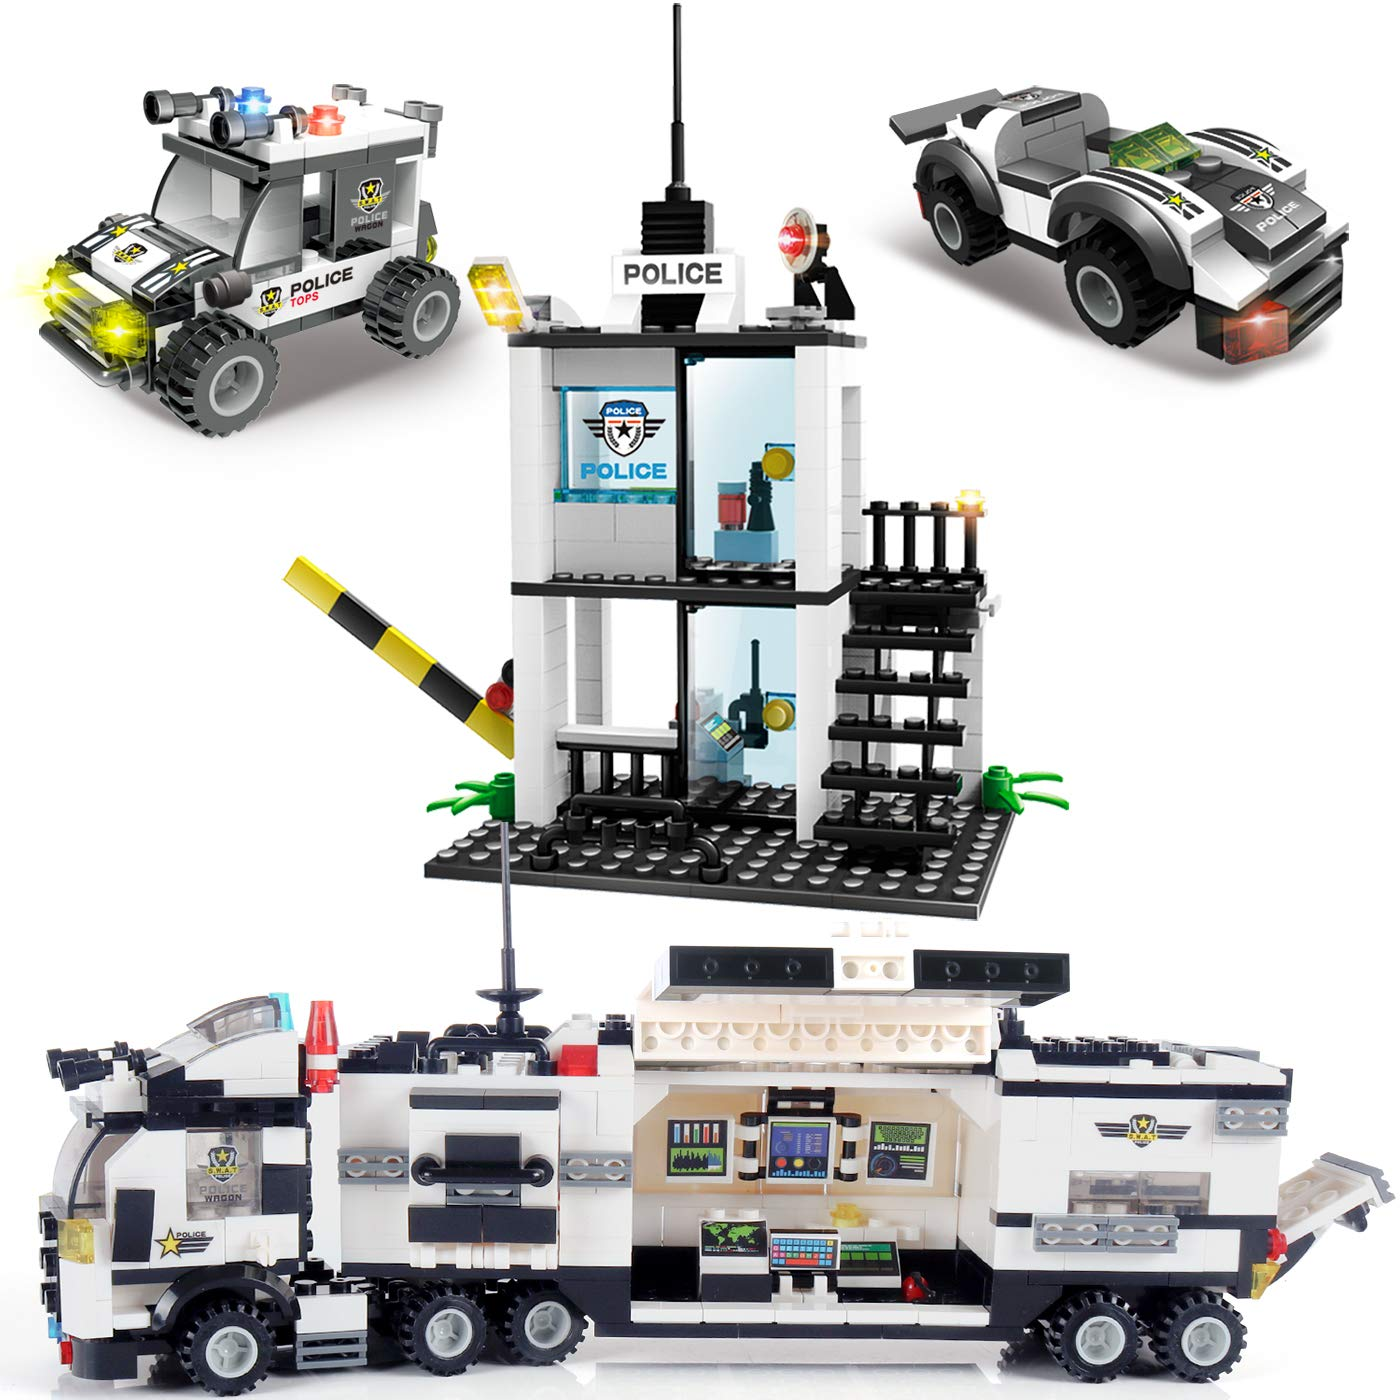 Riot City Police Building Blocks, Exercise N Play Car Command Center Station Bricks for Boys Girls Toddlers Construction Toys